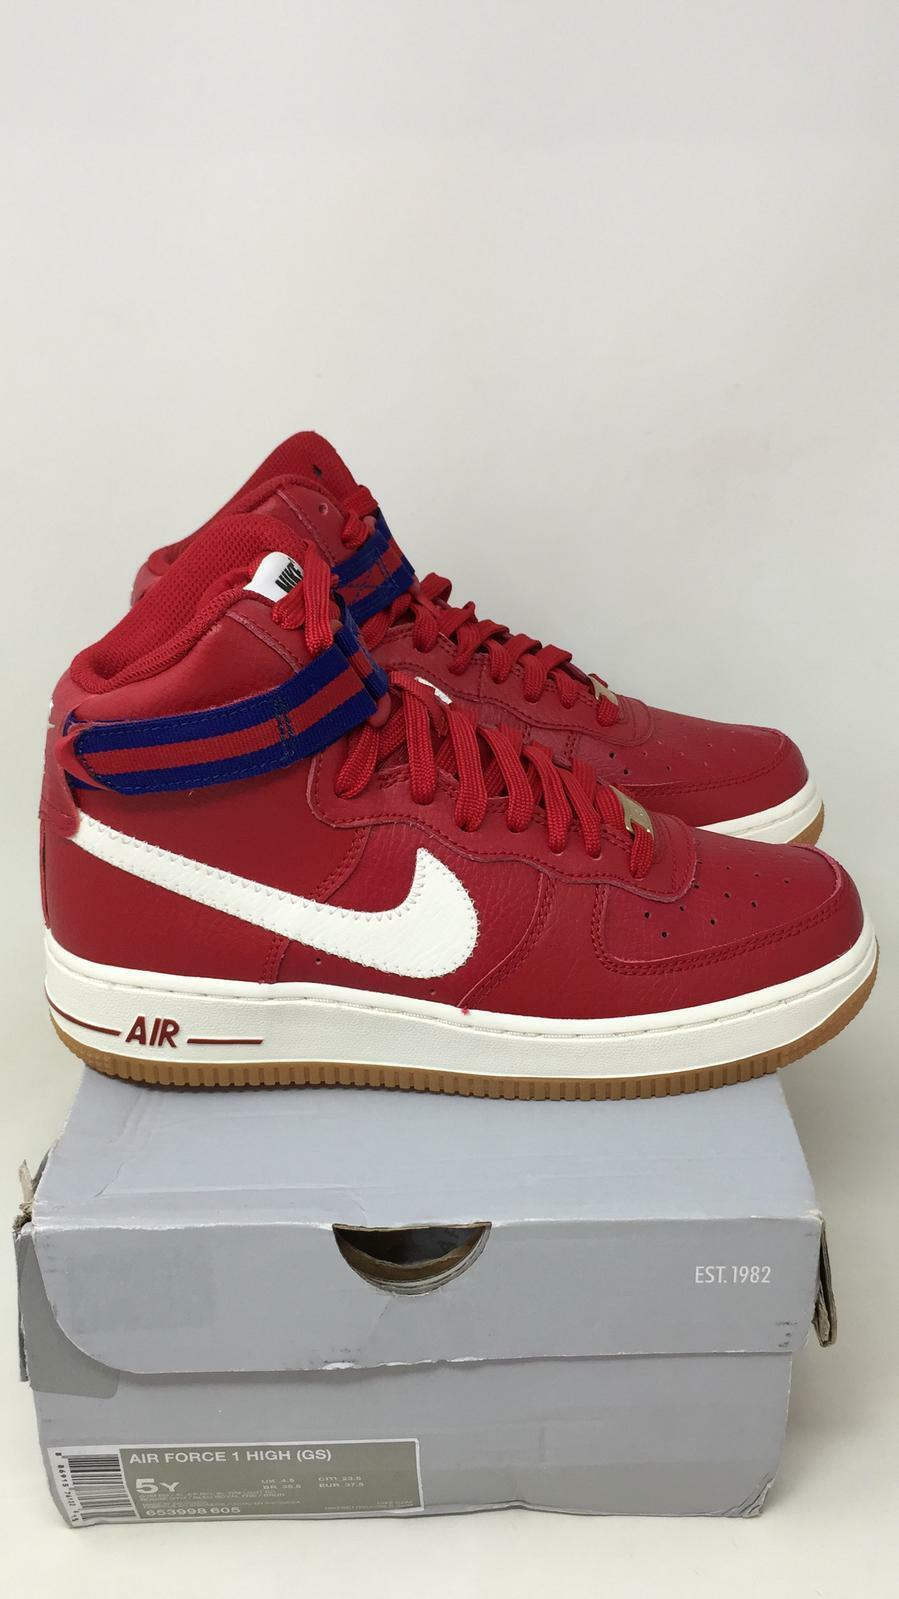 NEW Nike Kid's Air Force 1 High (GS) Basketball Shoes Size 5Y NIB